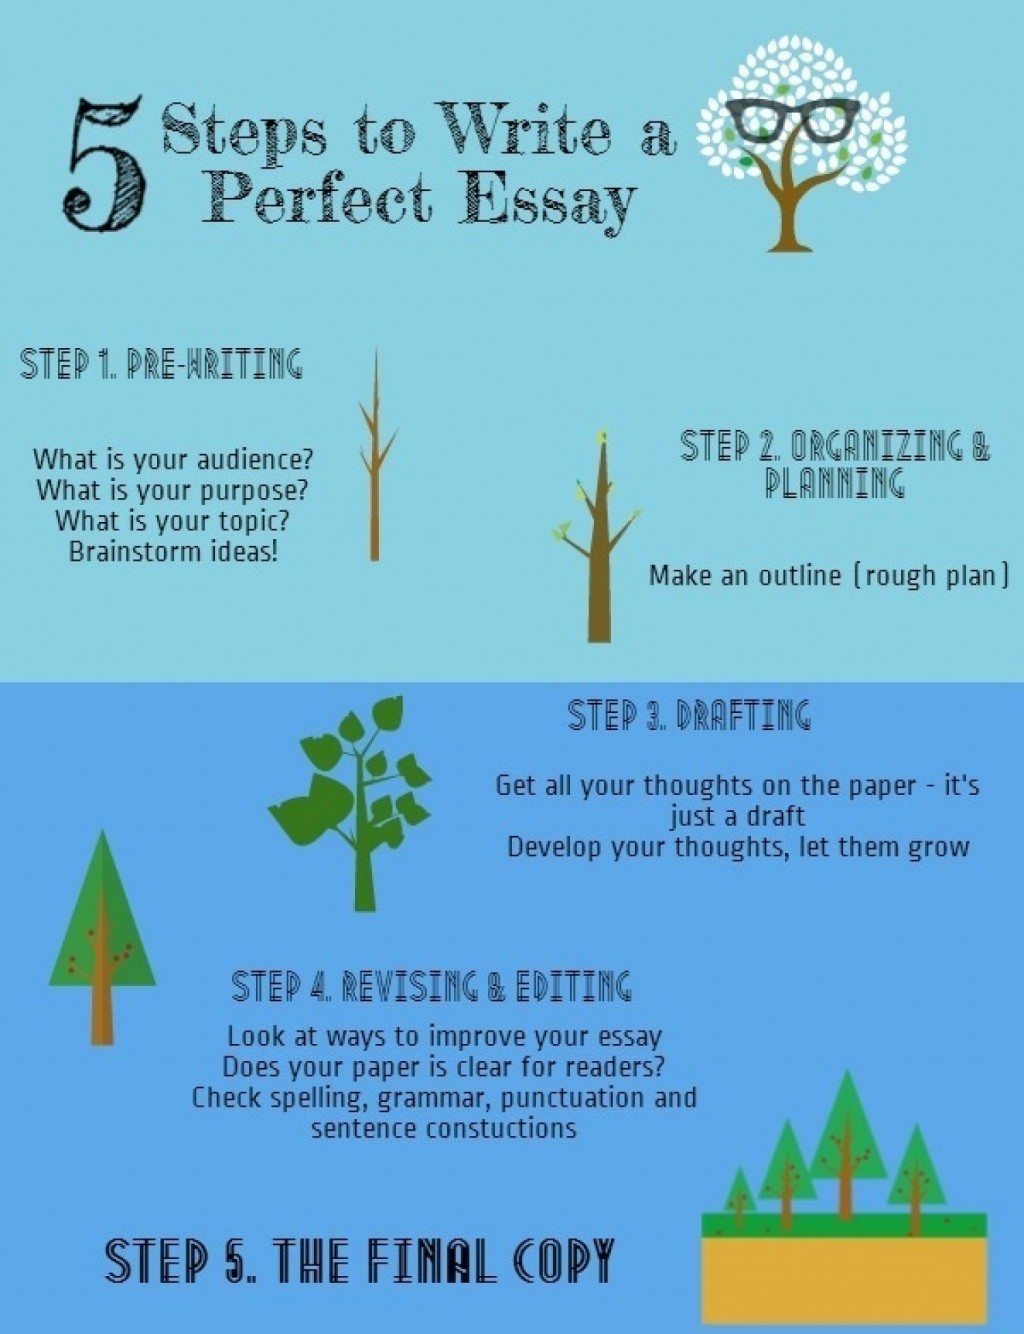 001 How To Write Perfect Essay Example Steps 547da311ad70a W1500 Remarkable A For College Good Admissions The Ged Test Large